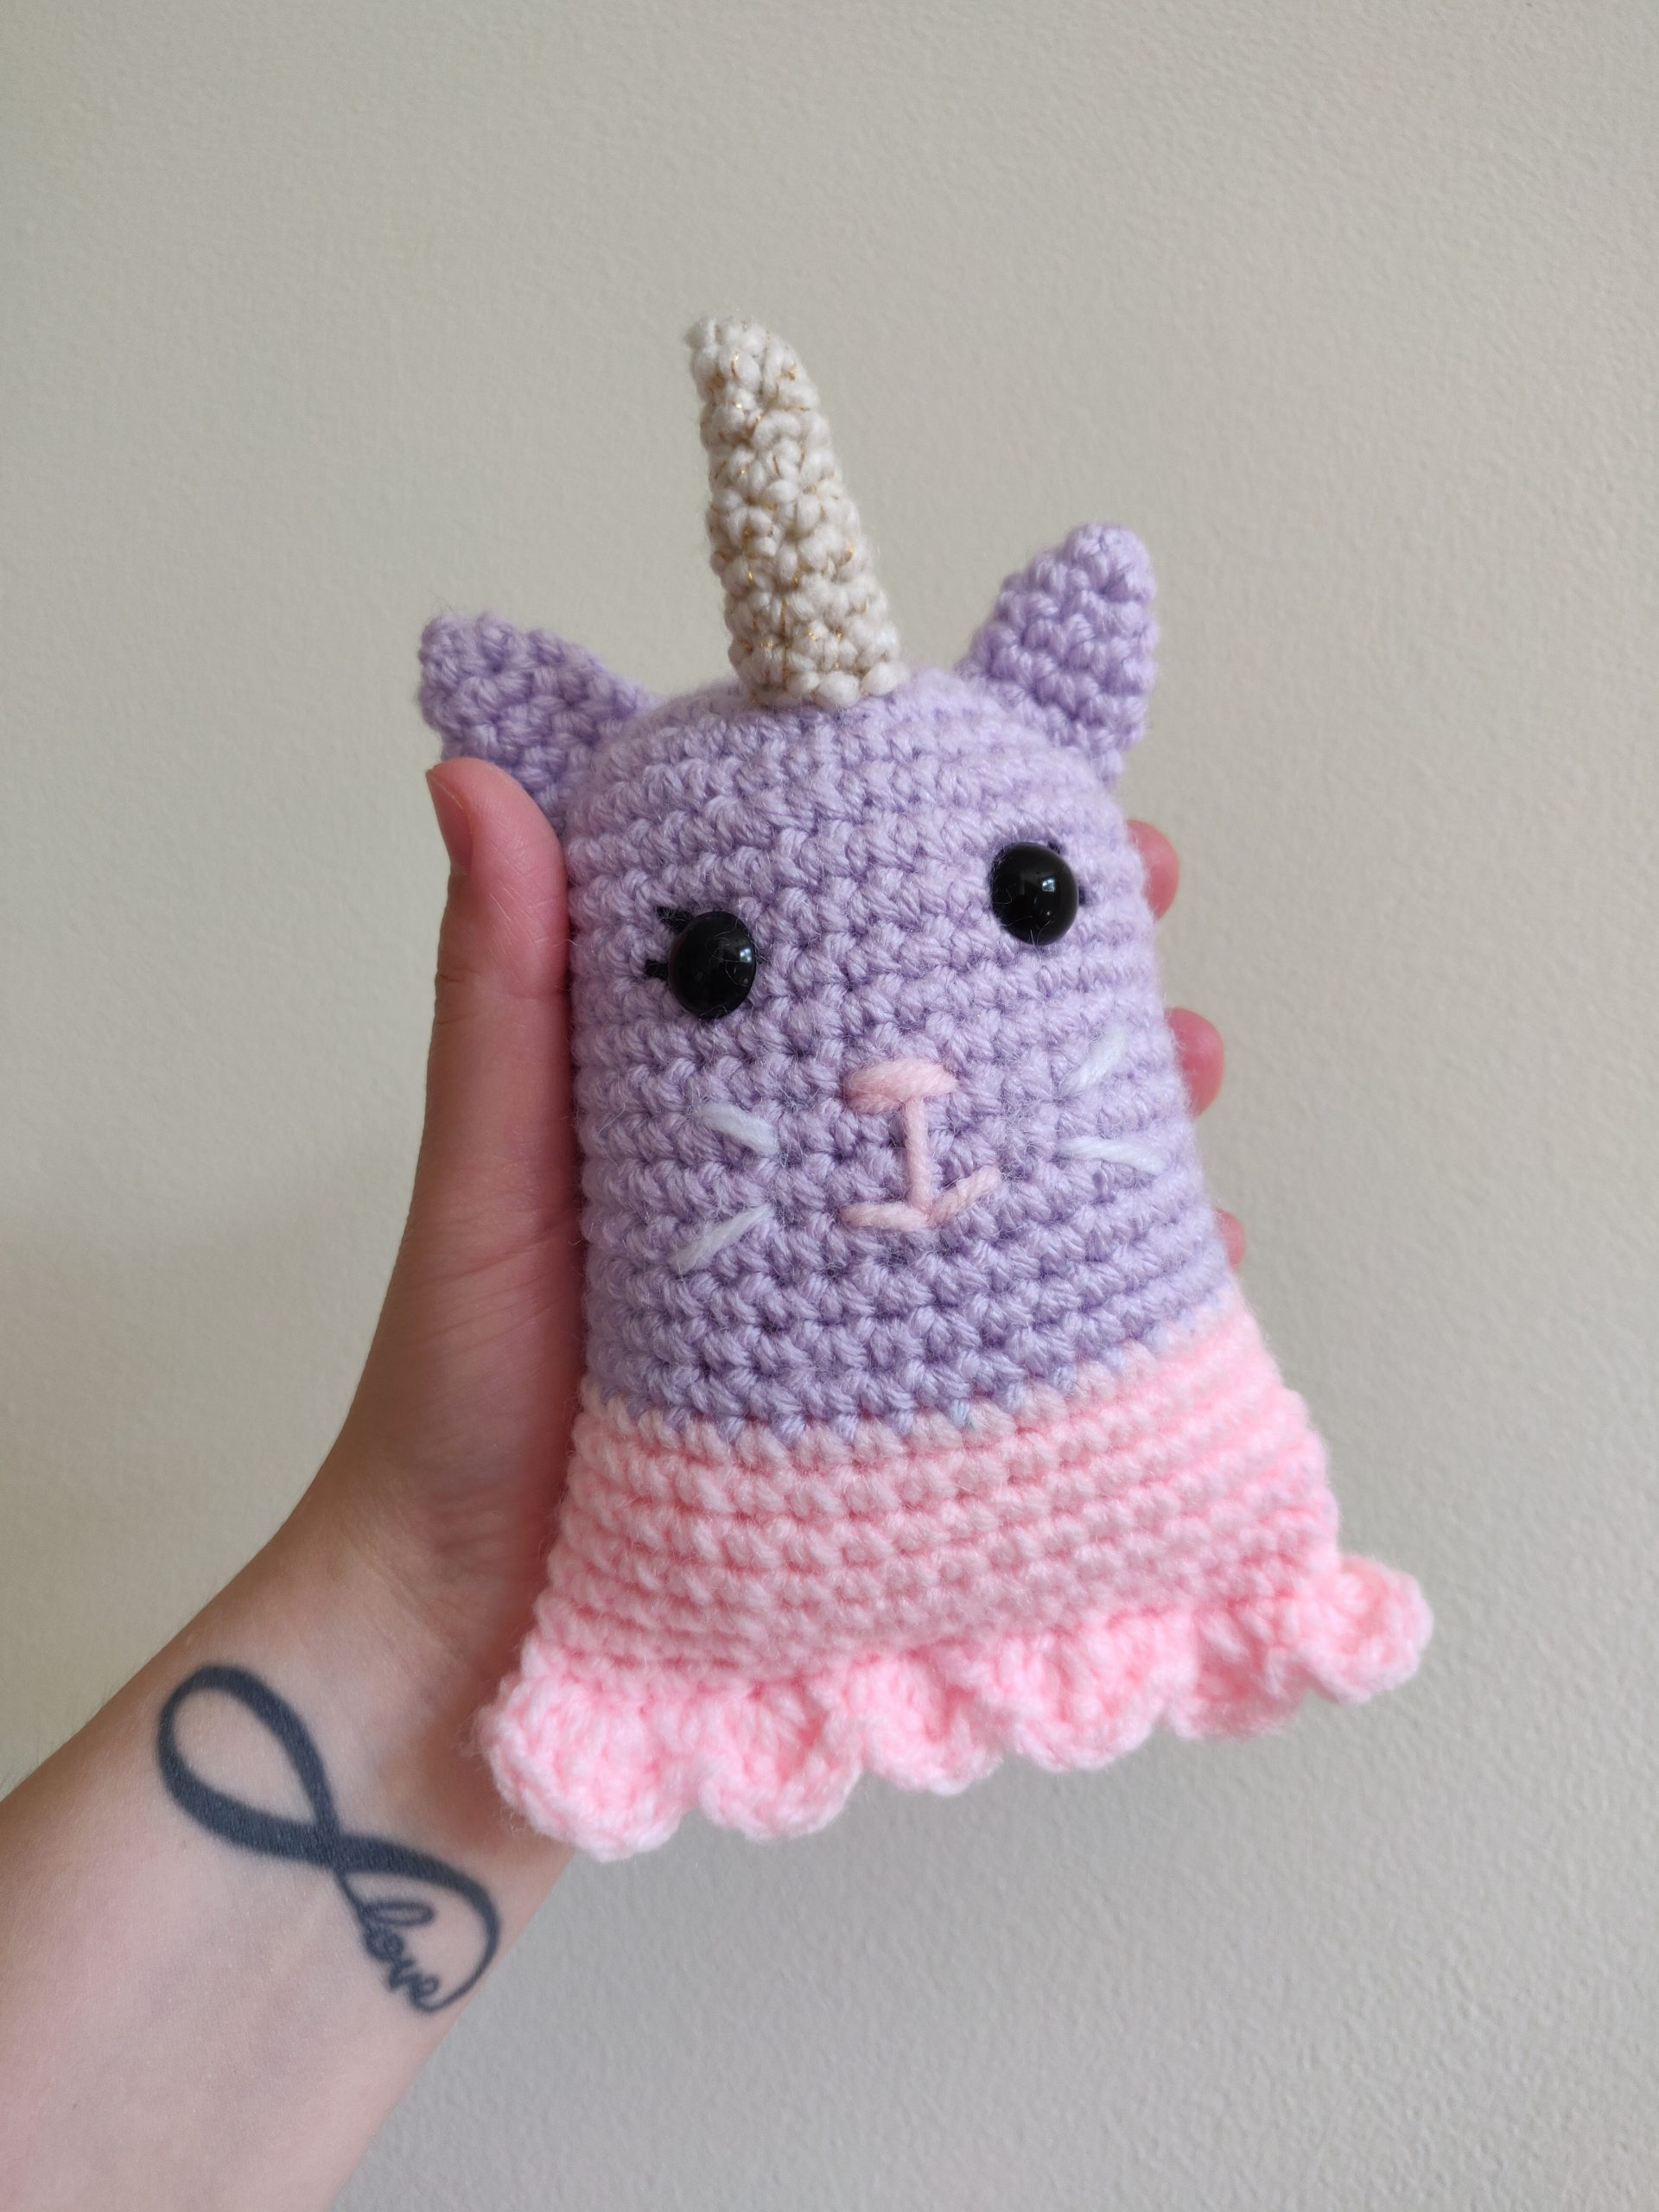 The unicorn kitty crochet pattern.